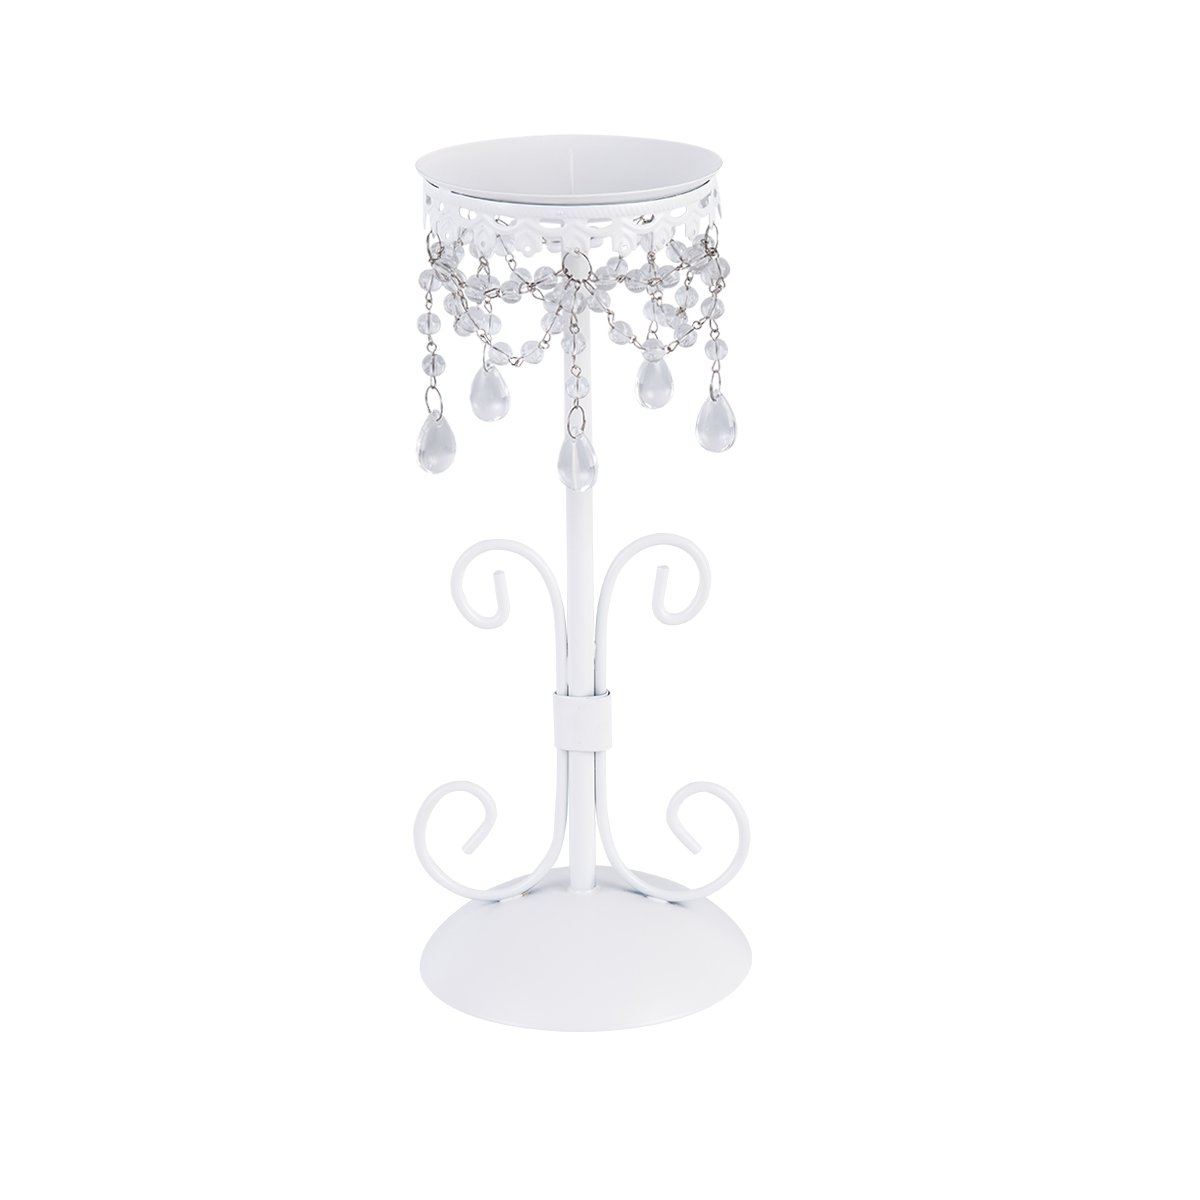 Decorative Iron Candles Holder, Europe Style Candles Stand with Crystal Bead for Living Room, Dining Table, Bar, White, 1 Pack by Manor